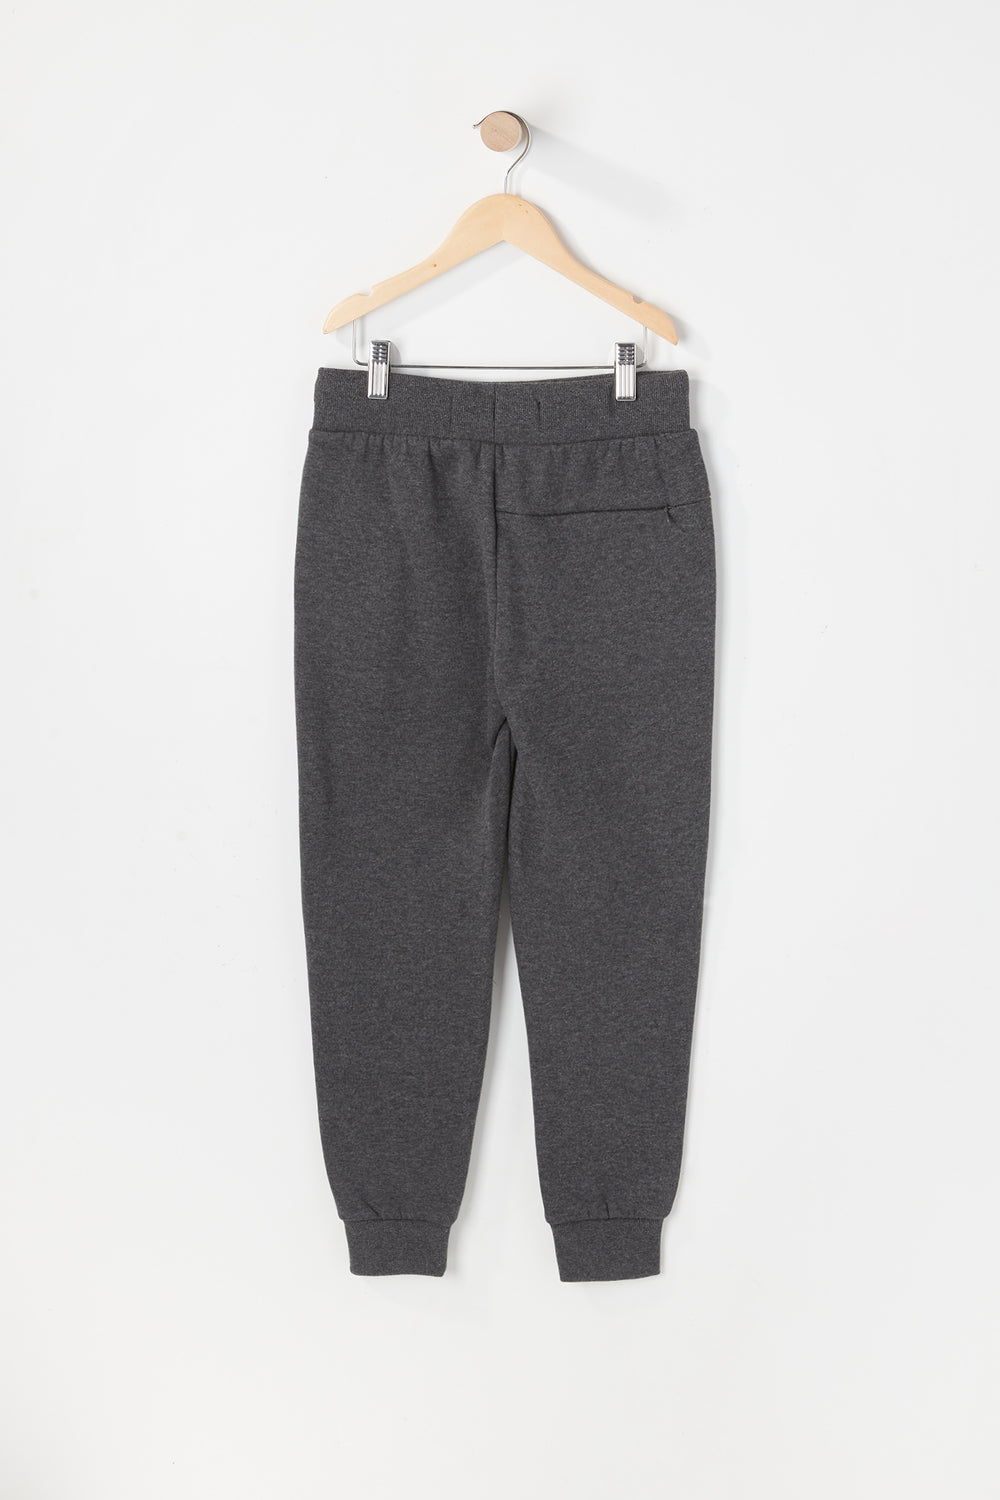 West49 Youth Solid Moto Jogger Charcoal